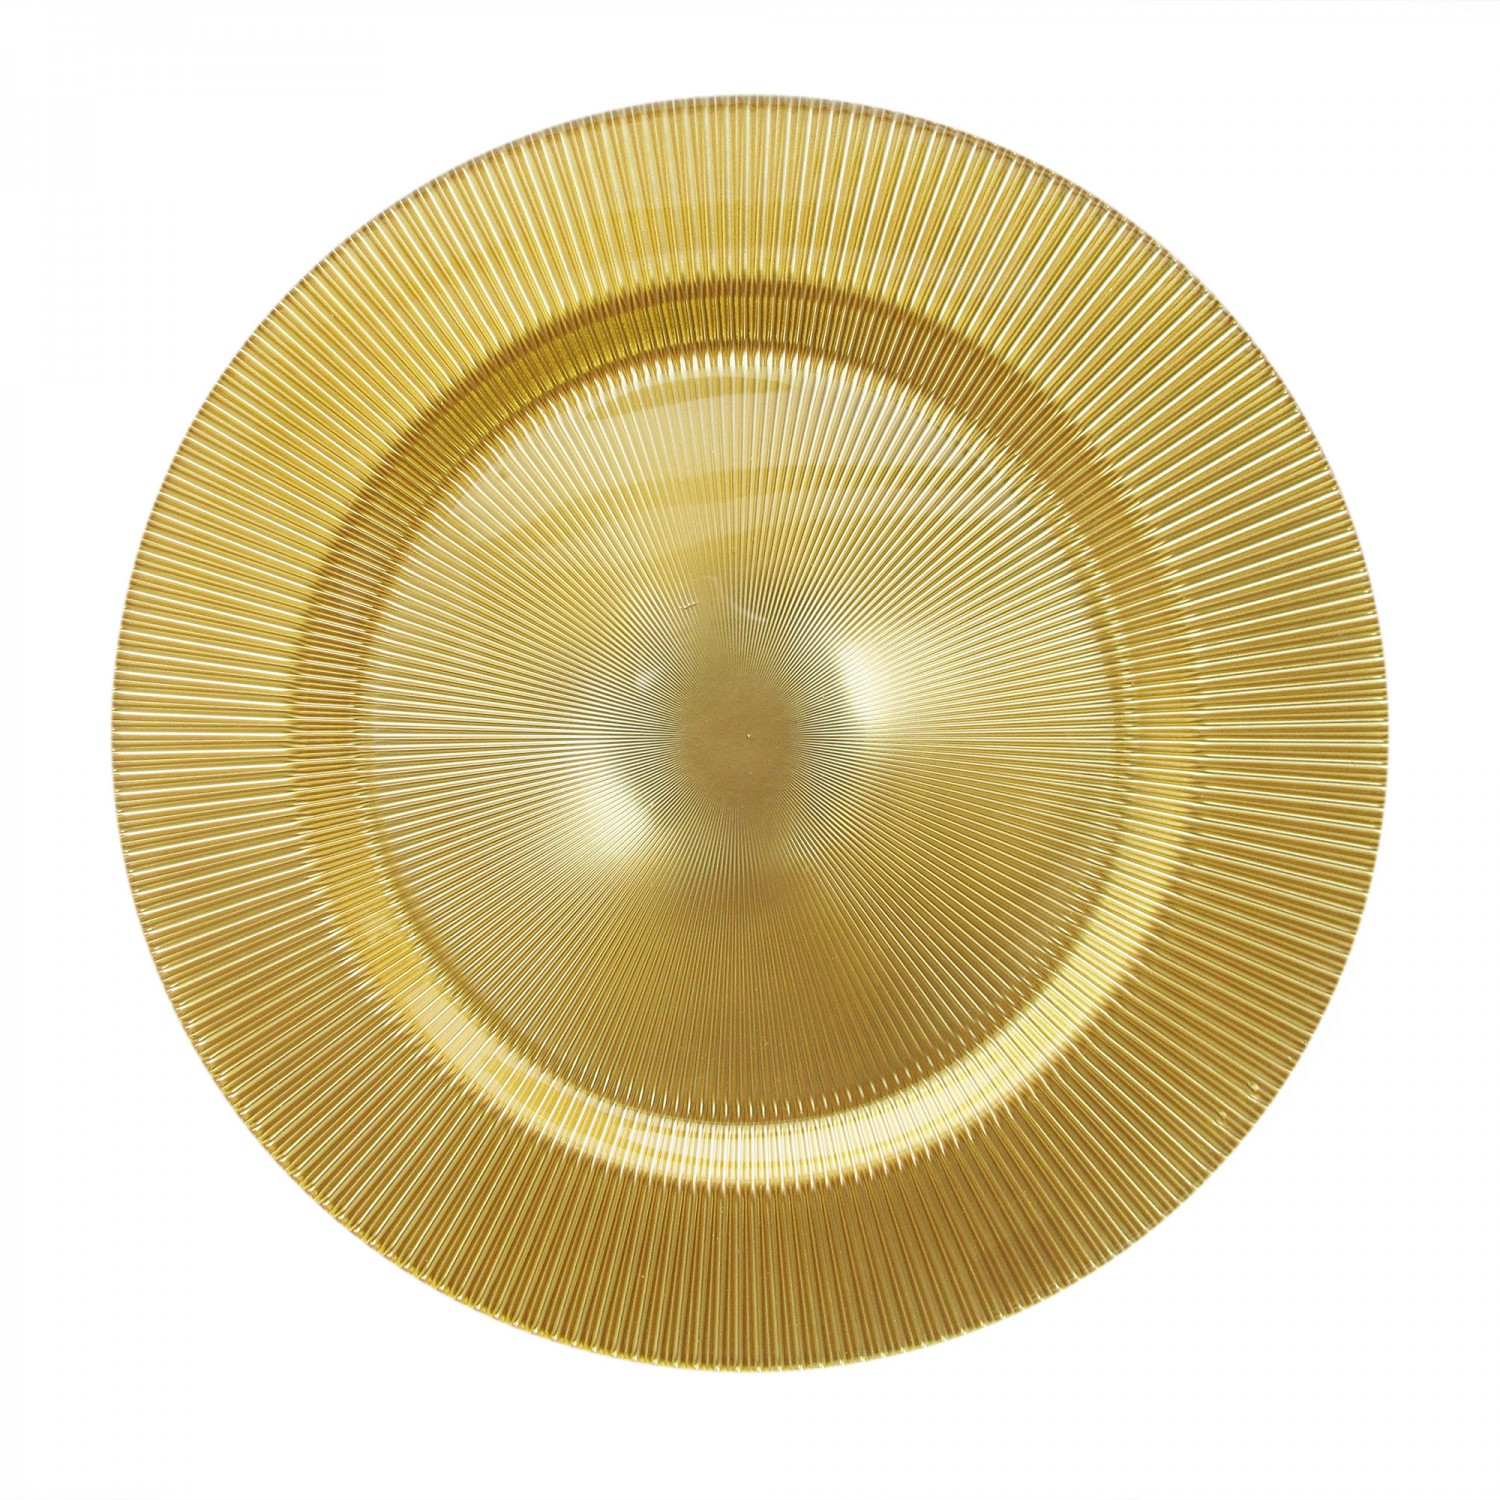 The Jay Companies 1470349 Round Sunray Gold Glass Charger Plate 13""